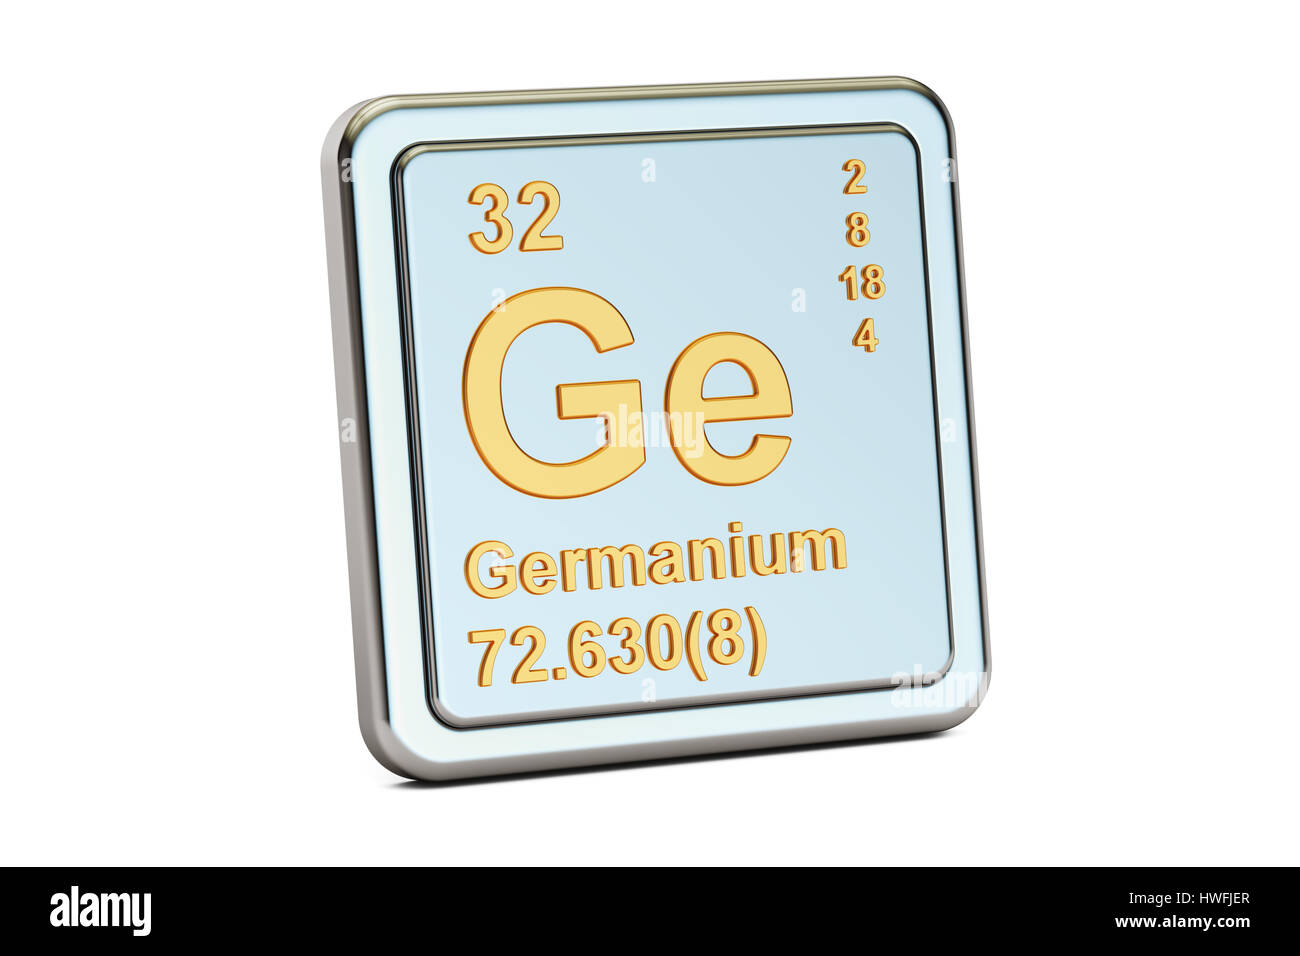 Germanium ge chemical element sign 3d rendering isolated on germanium ge chemical element sign 3d rendering isolated on white background biocorpaavc Gallery